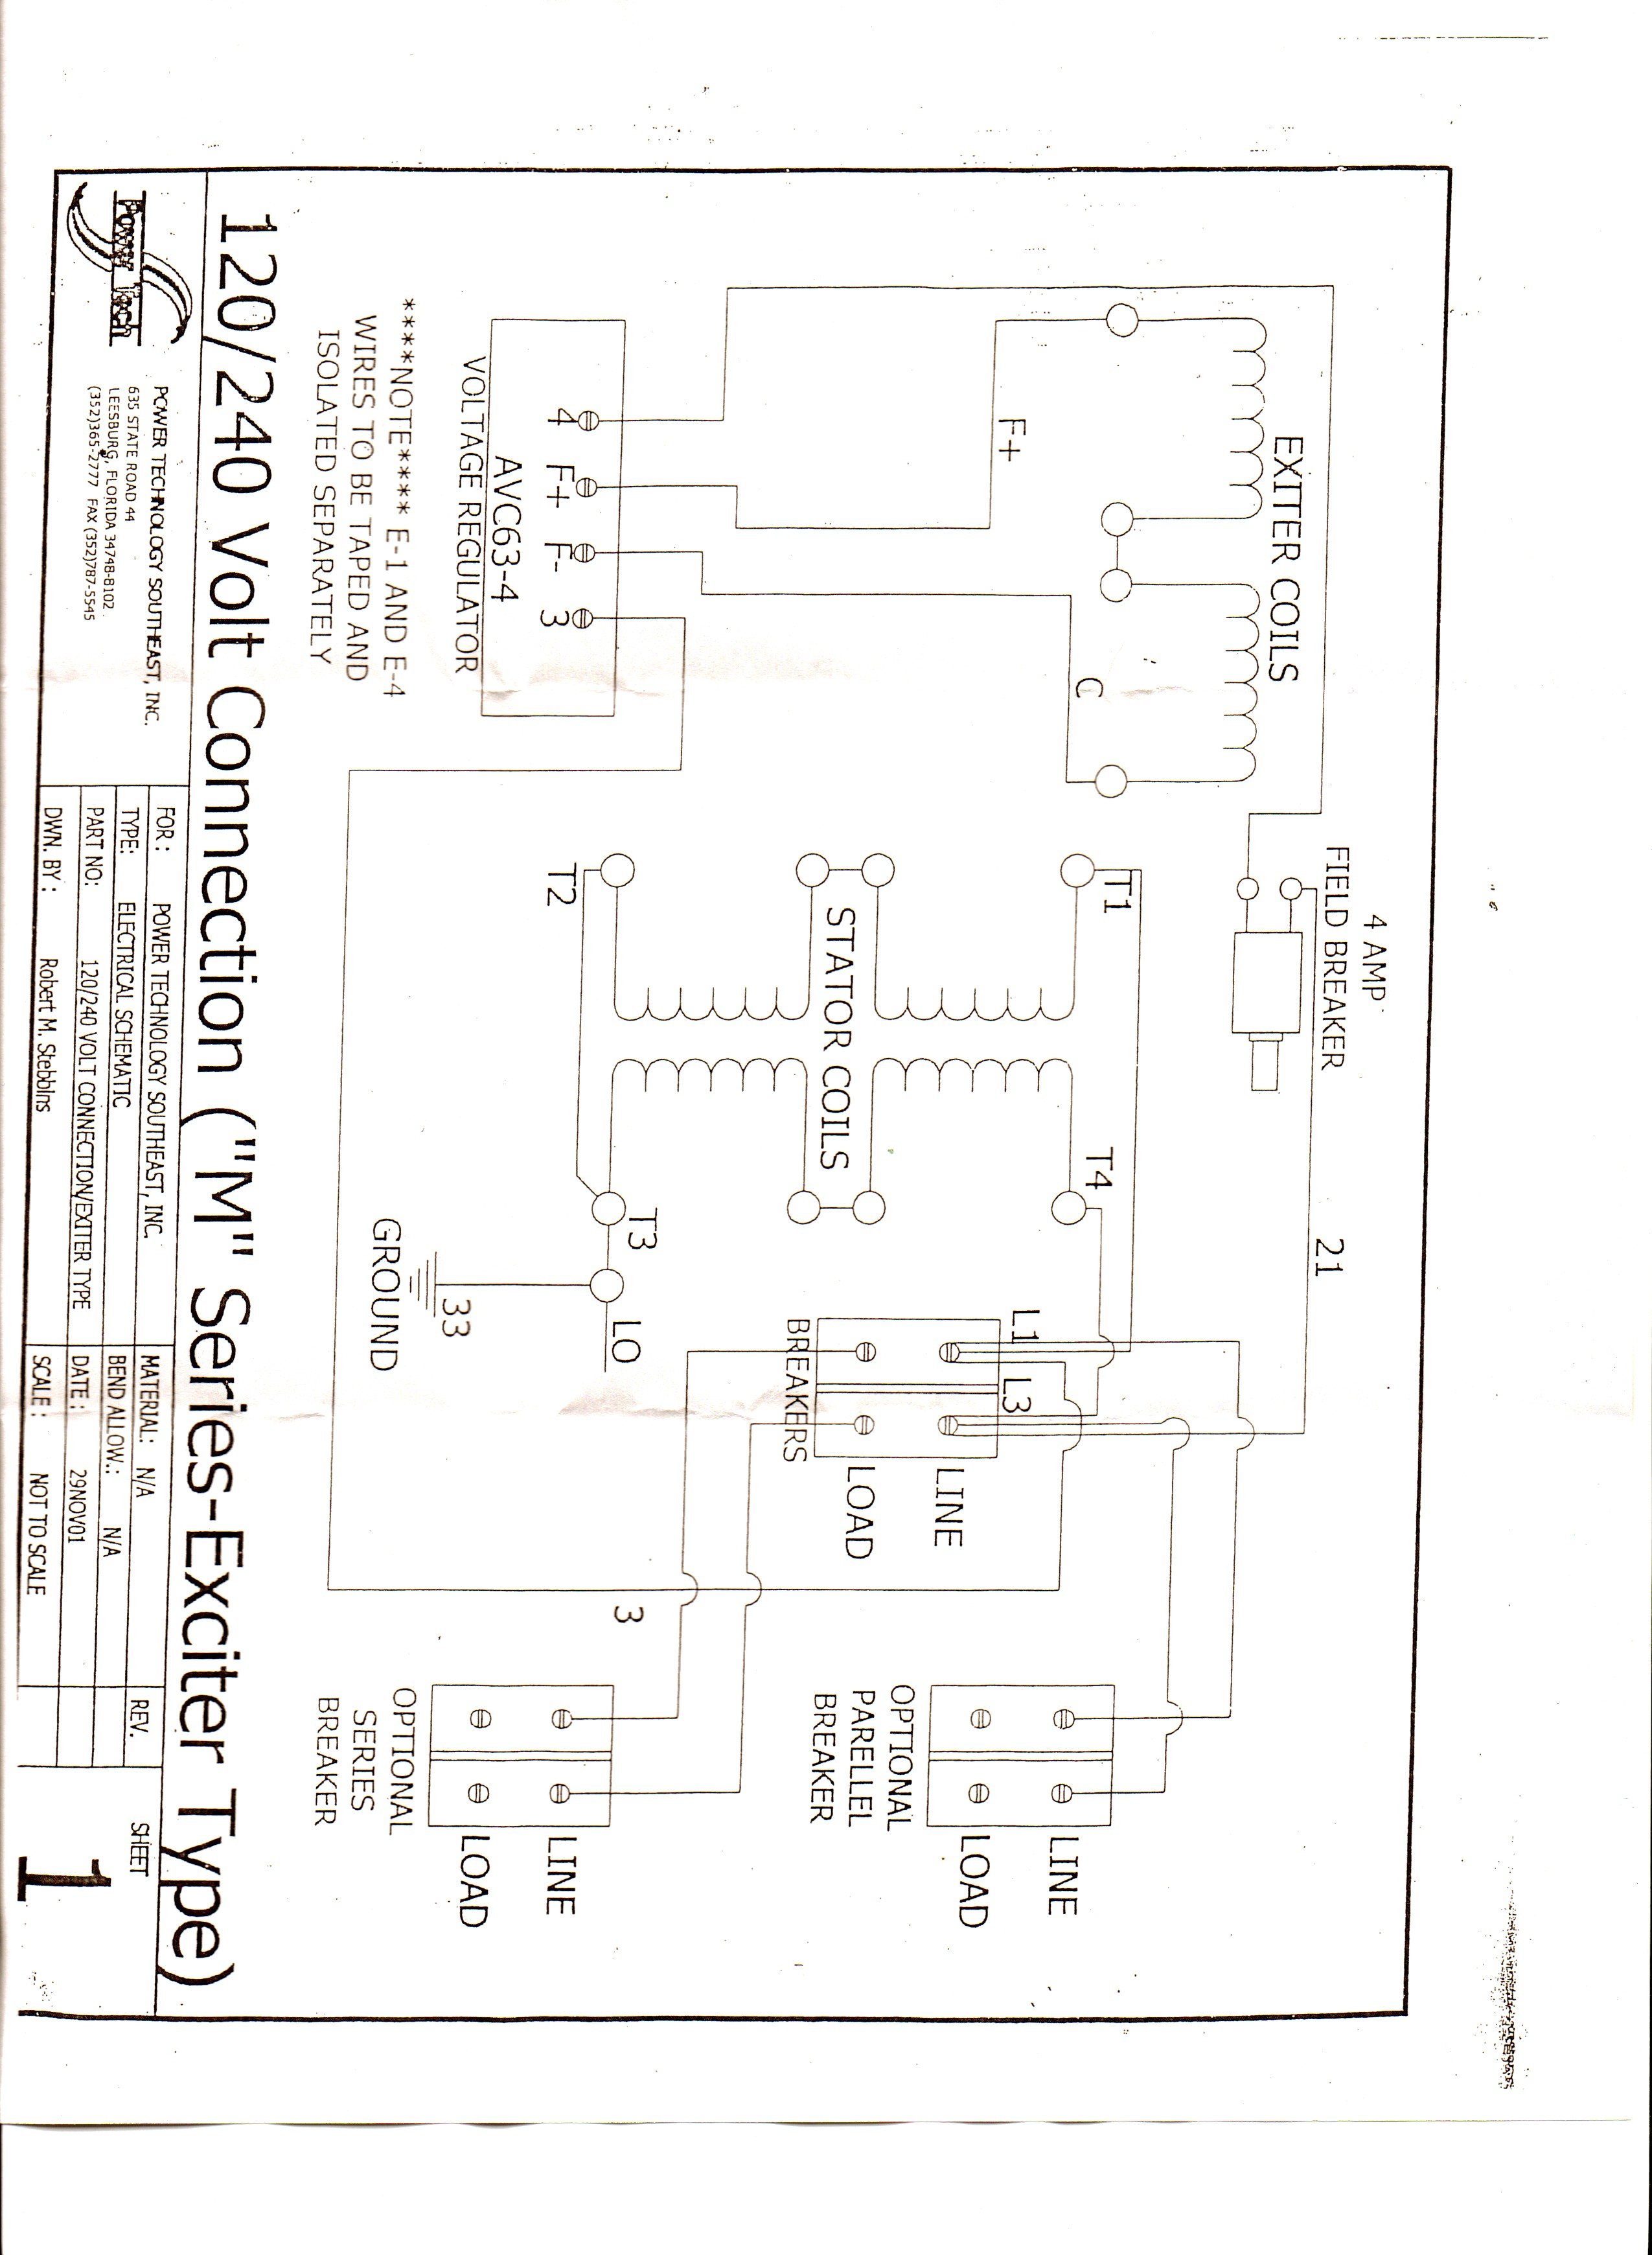 kubota wiring diagram wiring diagram and hernes kubota rtv 900 wiring diagram auto schematic